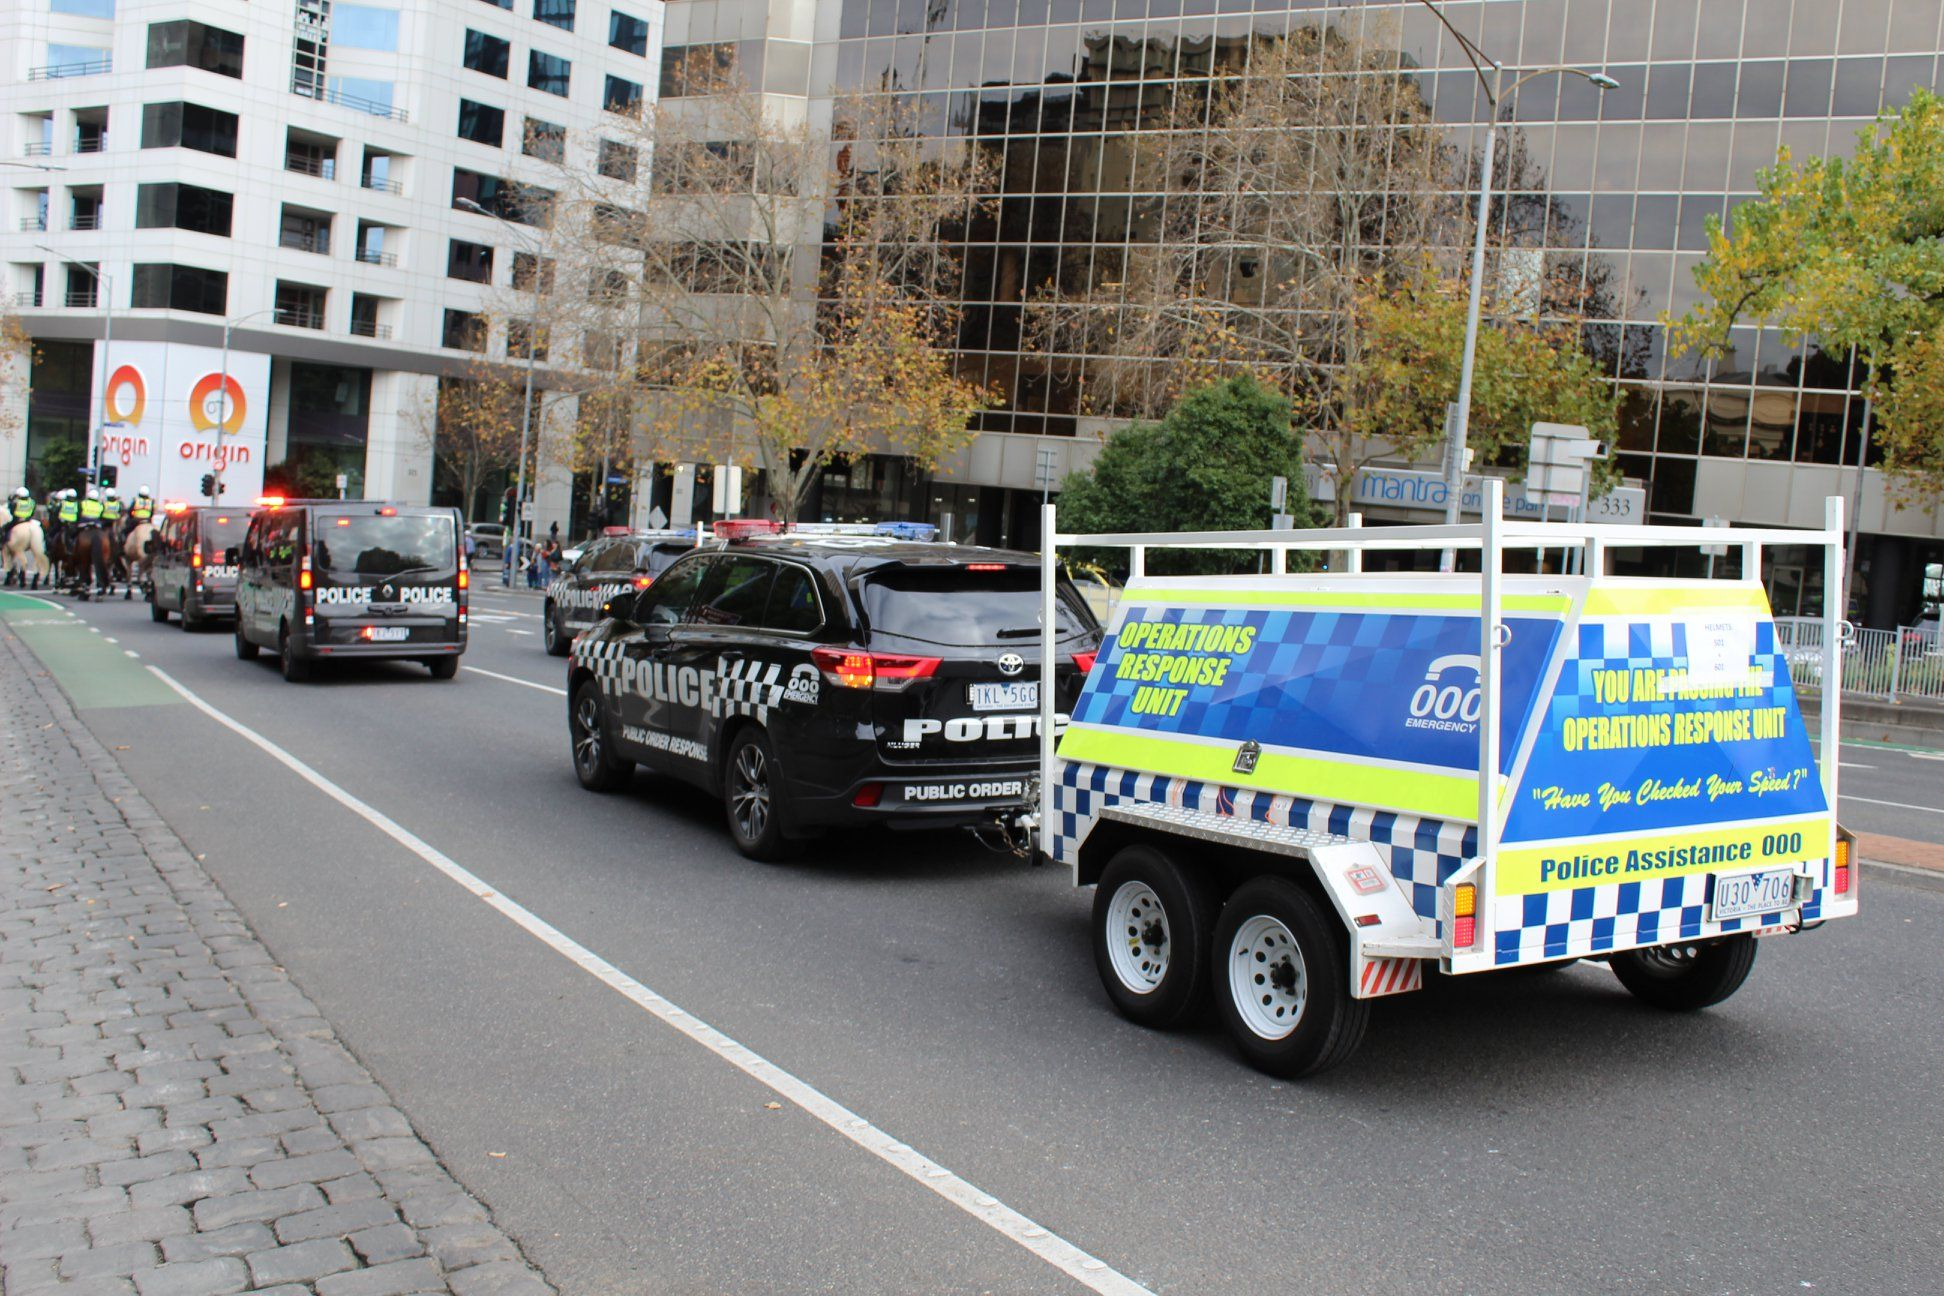 Pin by Aaron Viles on Victoria Police Victoria police